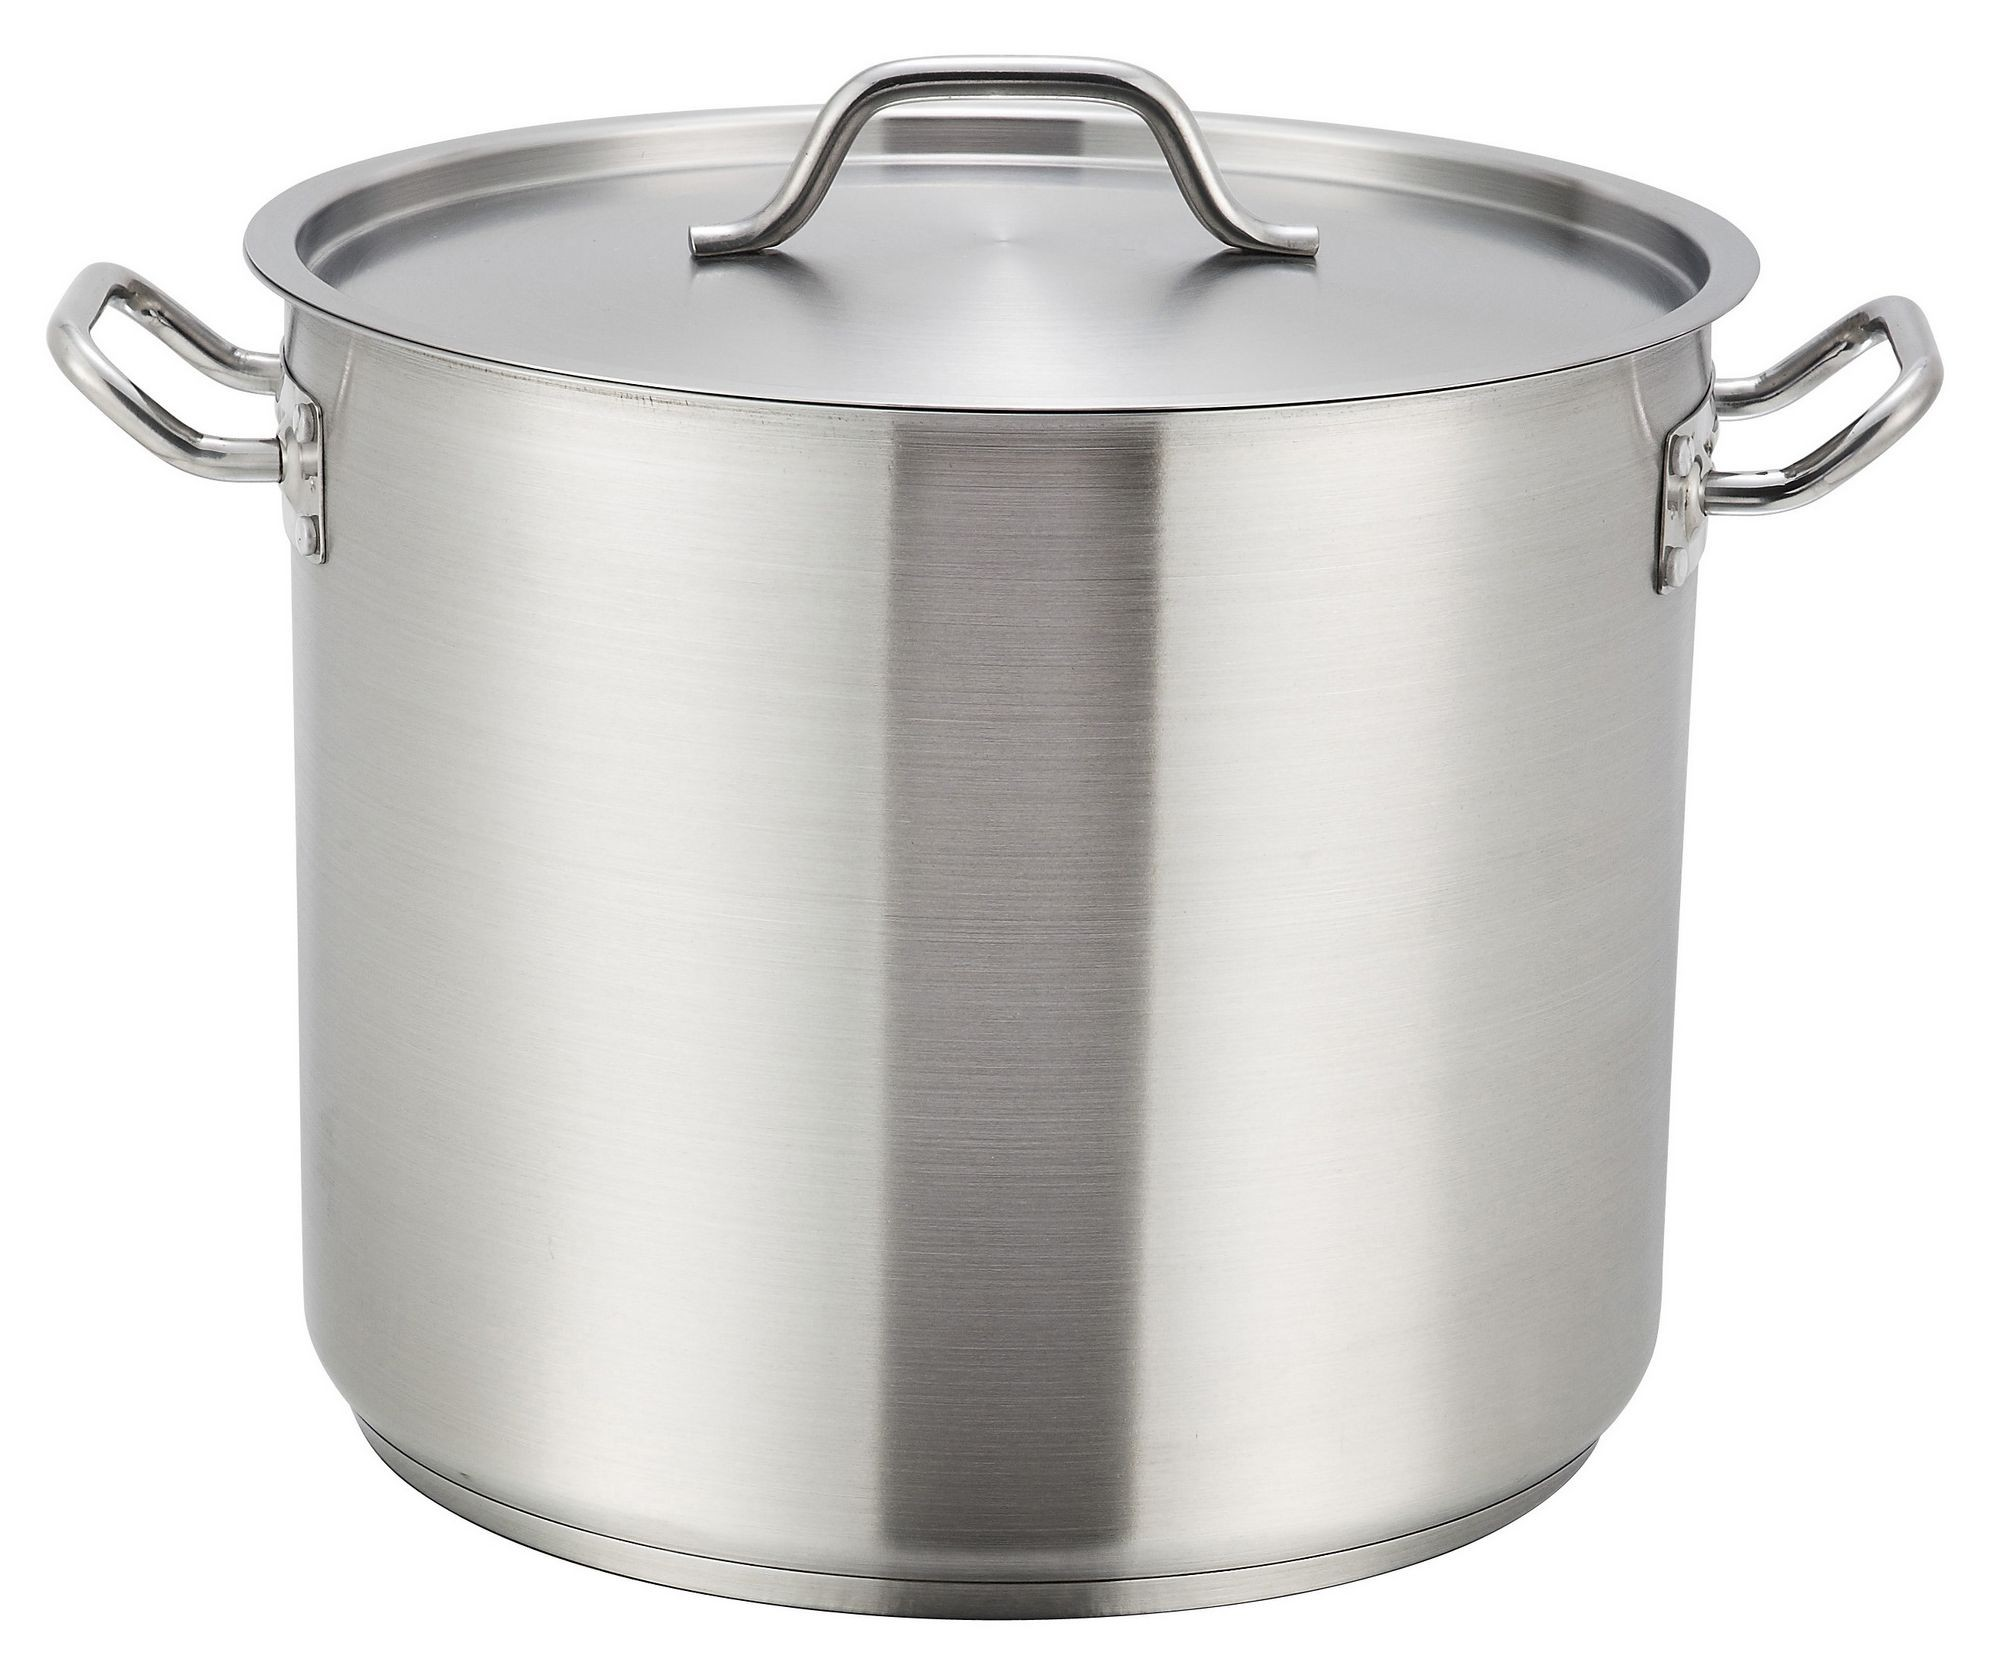 Winco SST-32 Premium Induction Stainless Steel 32 Qt. Stock Pot